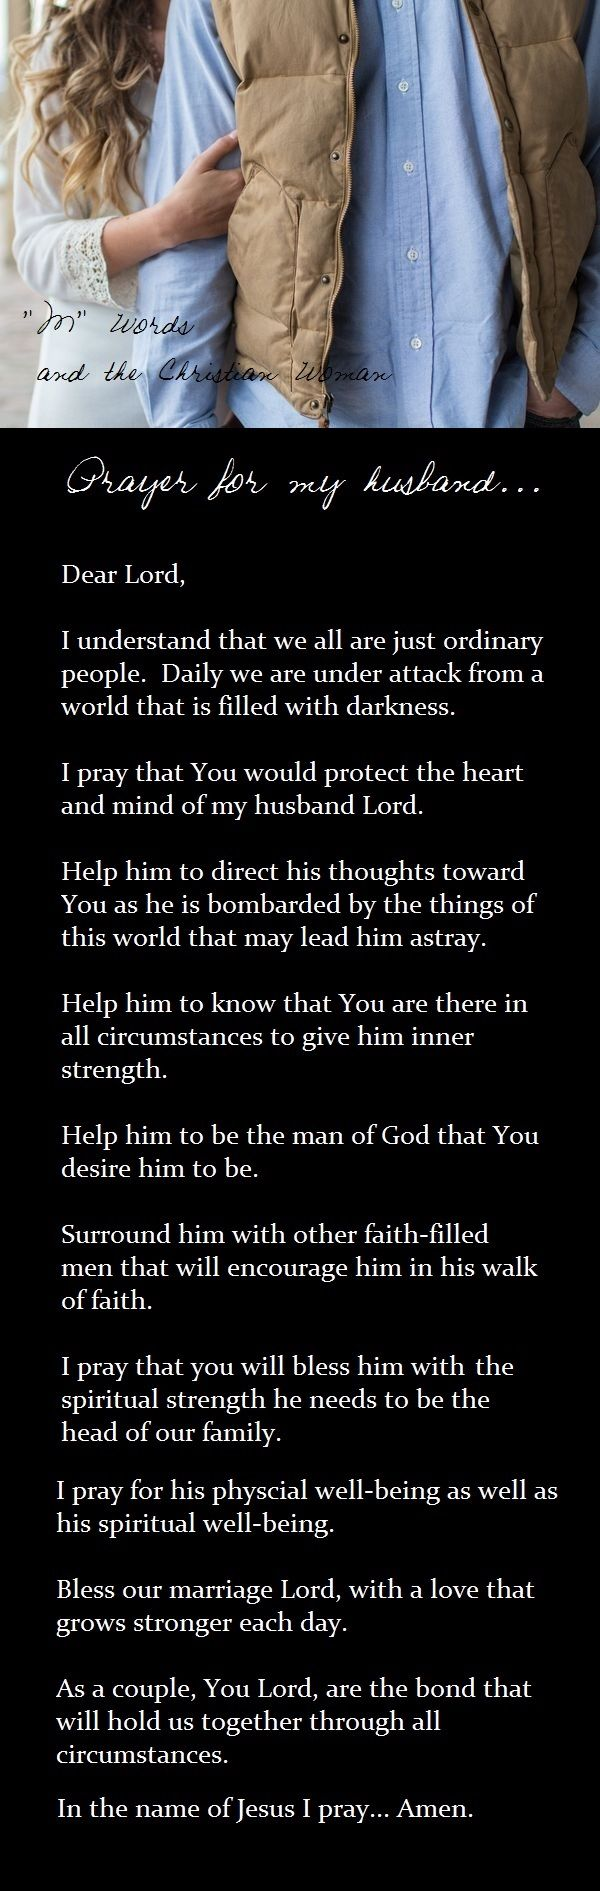 Prayer for my husband...